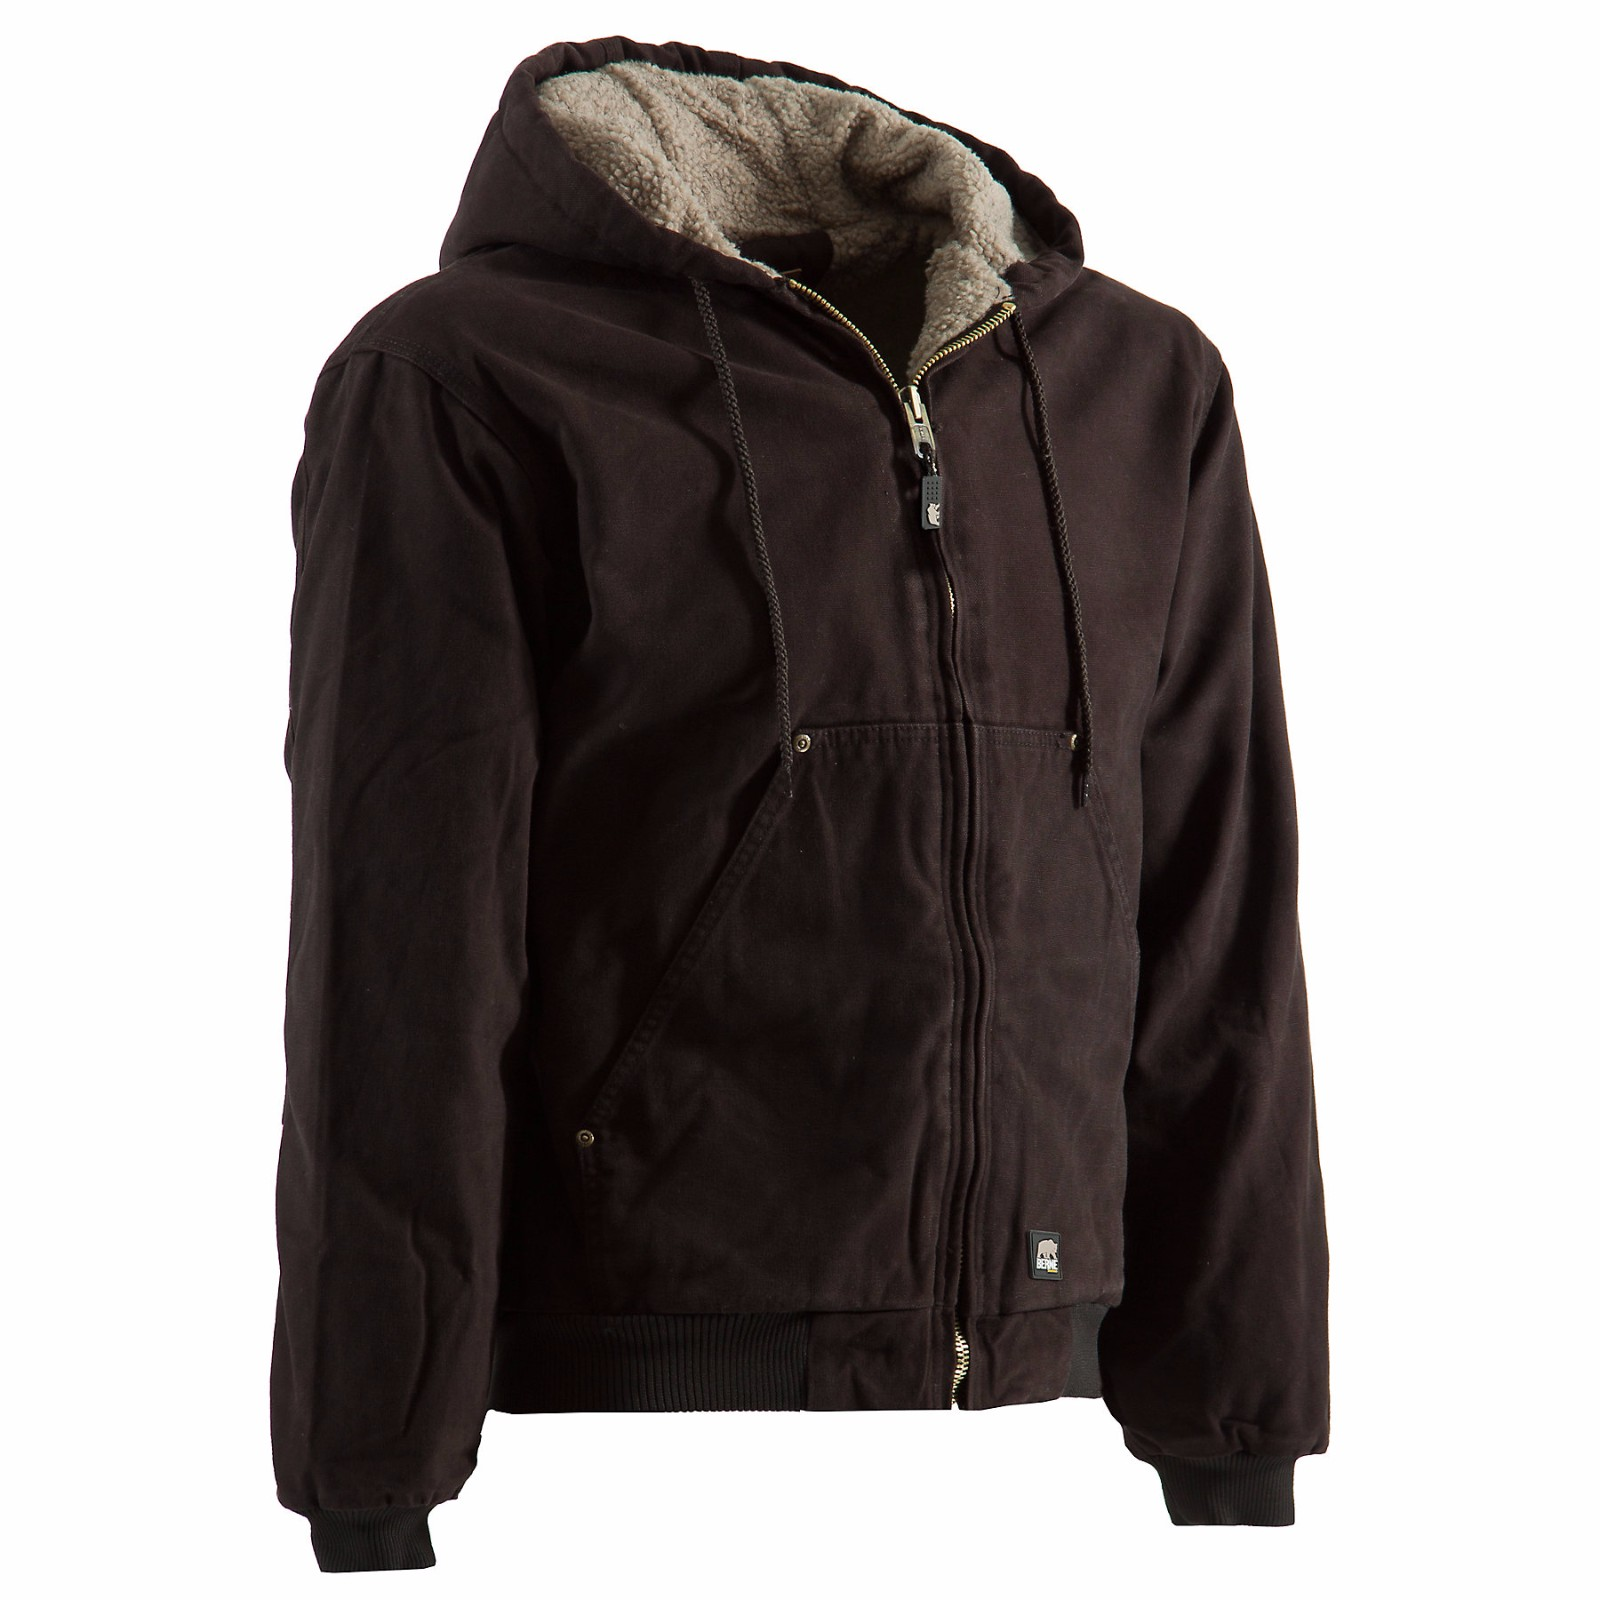 Berne Apparel High Country Hooded Jacket - Sherpa Lined S...